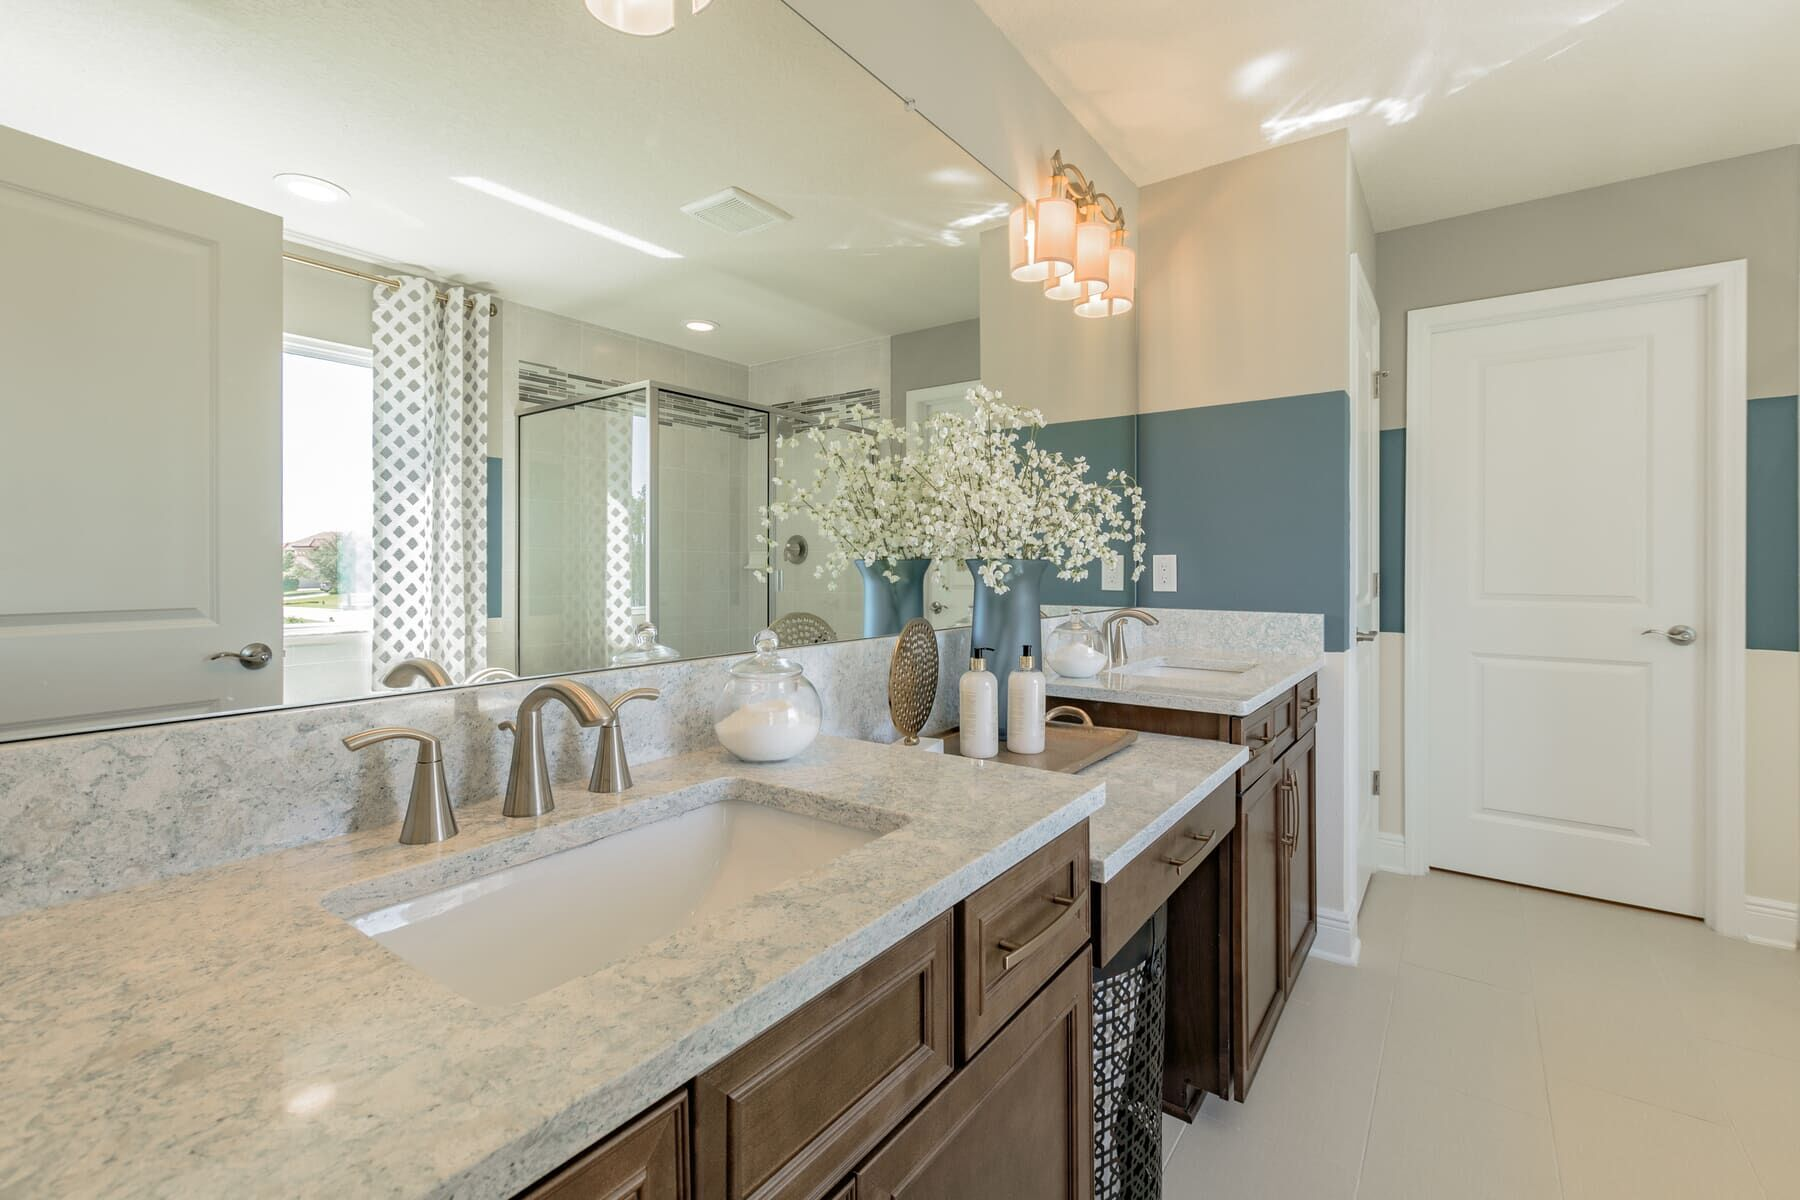 Bathroom featured in the Grandsail  III By M/I Homes in Tampa-St. Petersburg, FL